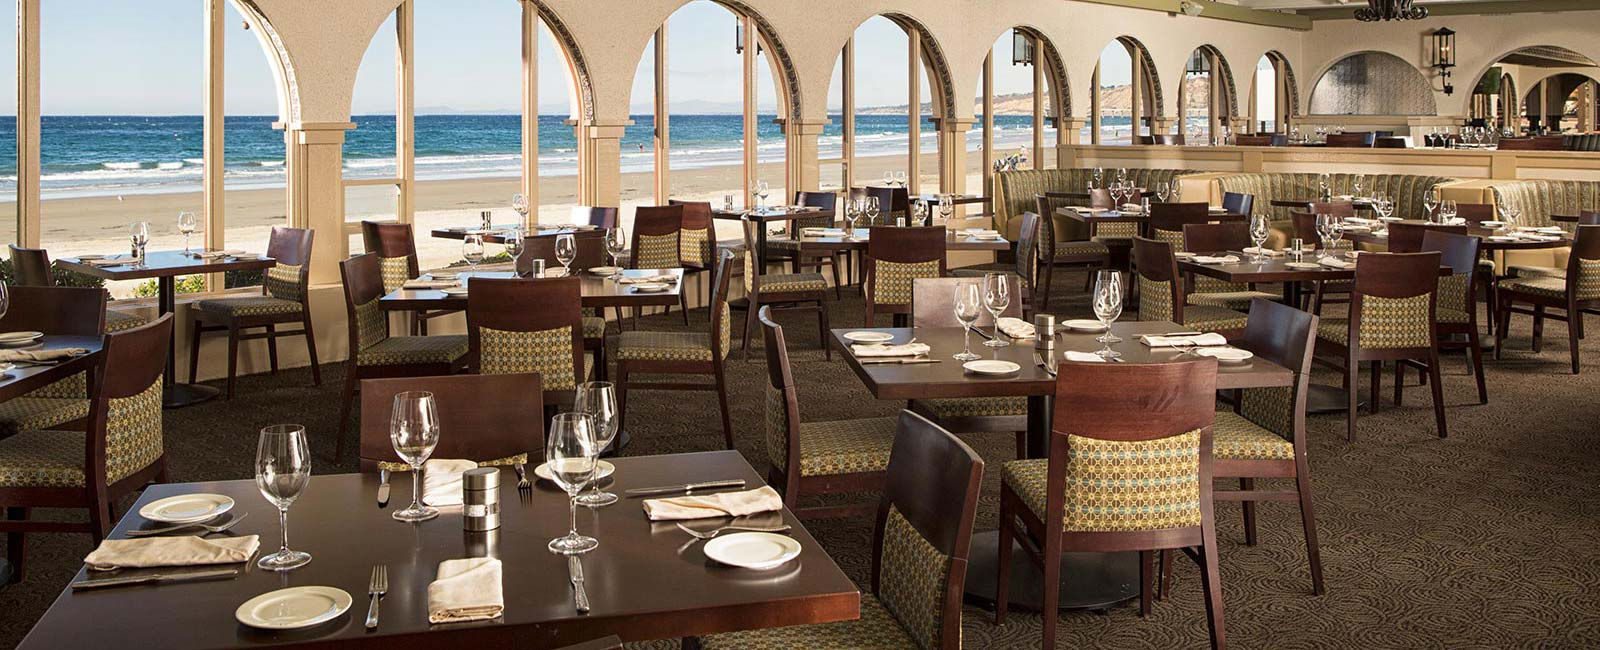 Career in The Shores Restaurant, California